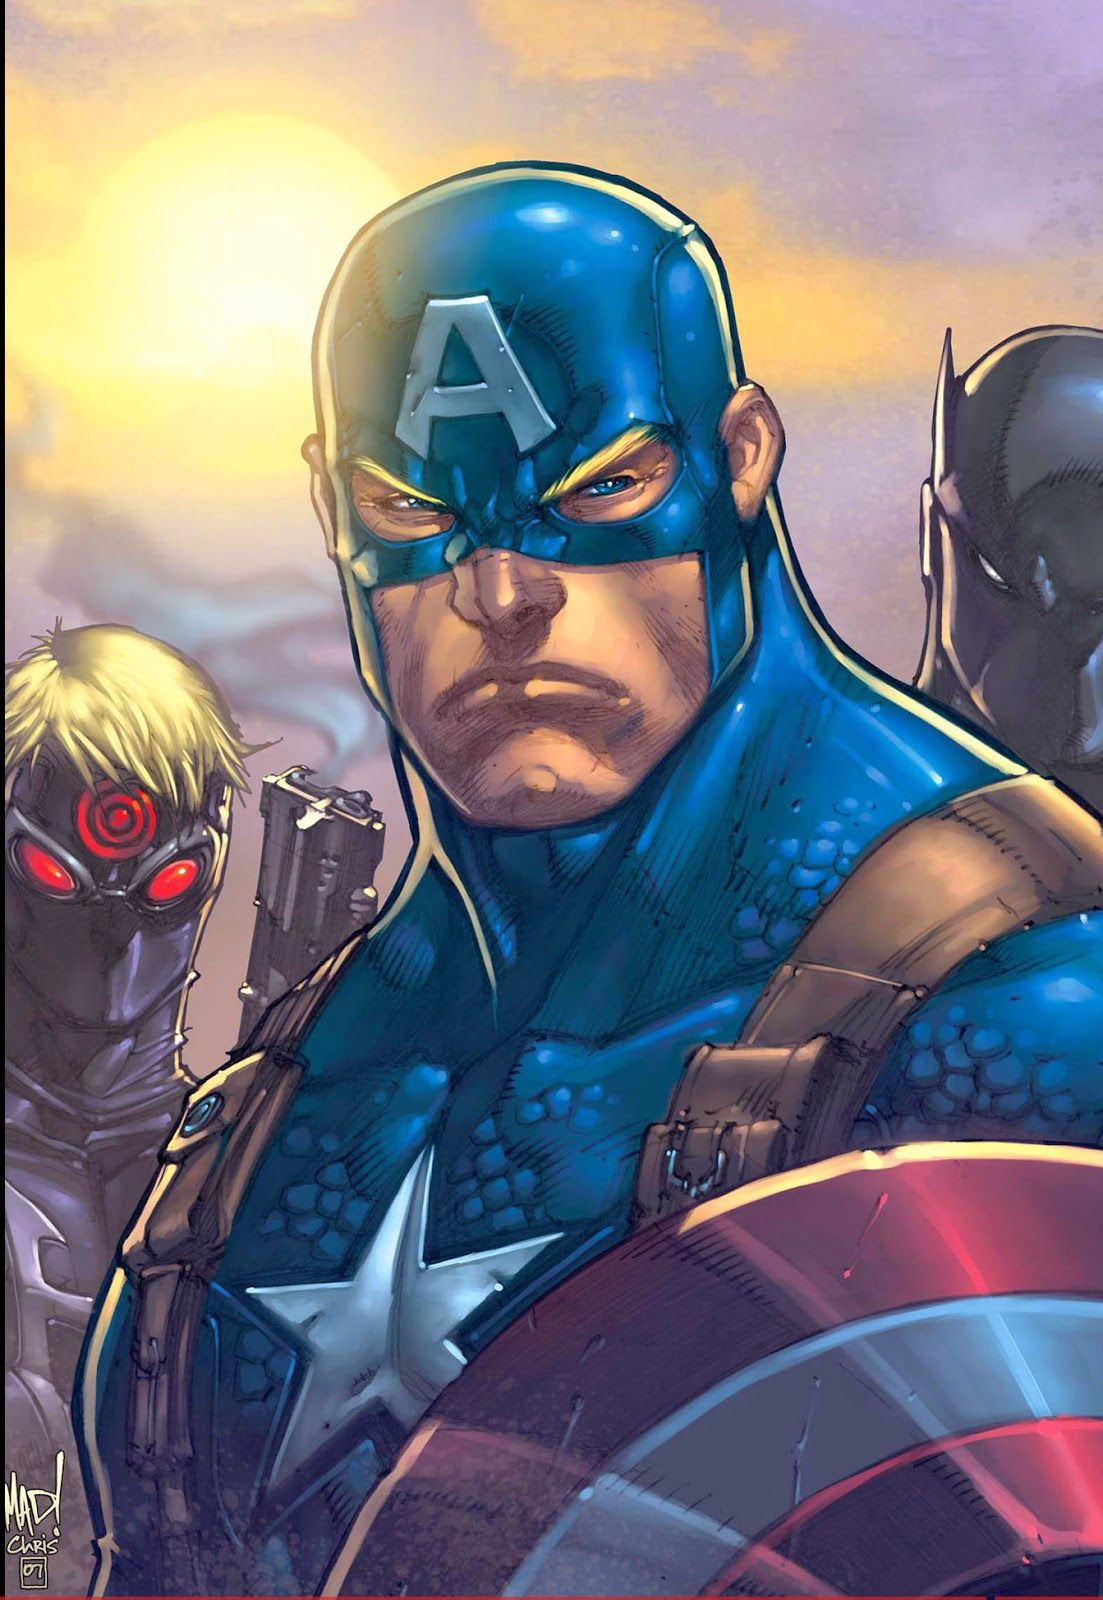 These are 5 Images about Kumpulan Gambar Captain America